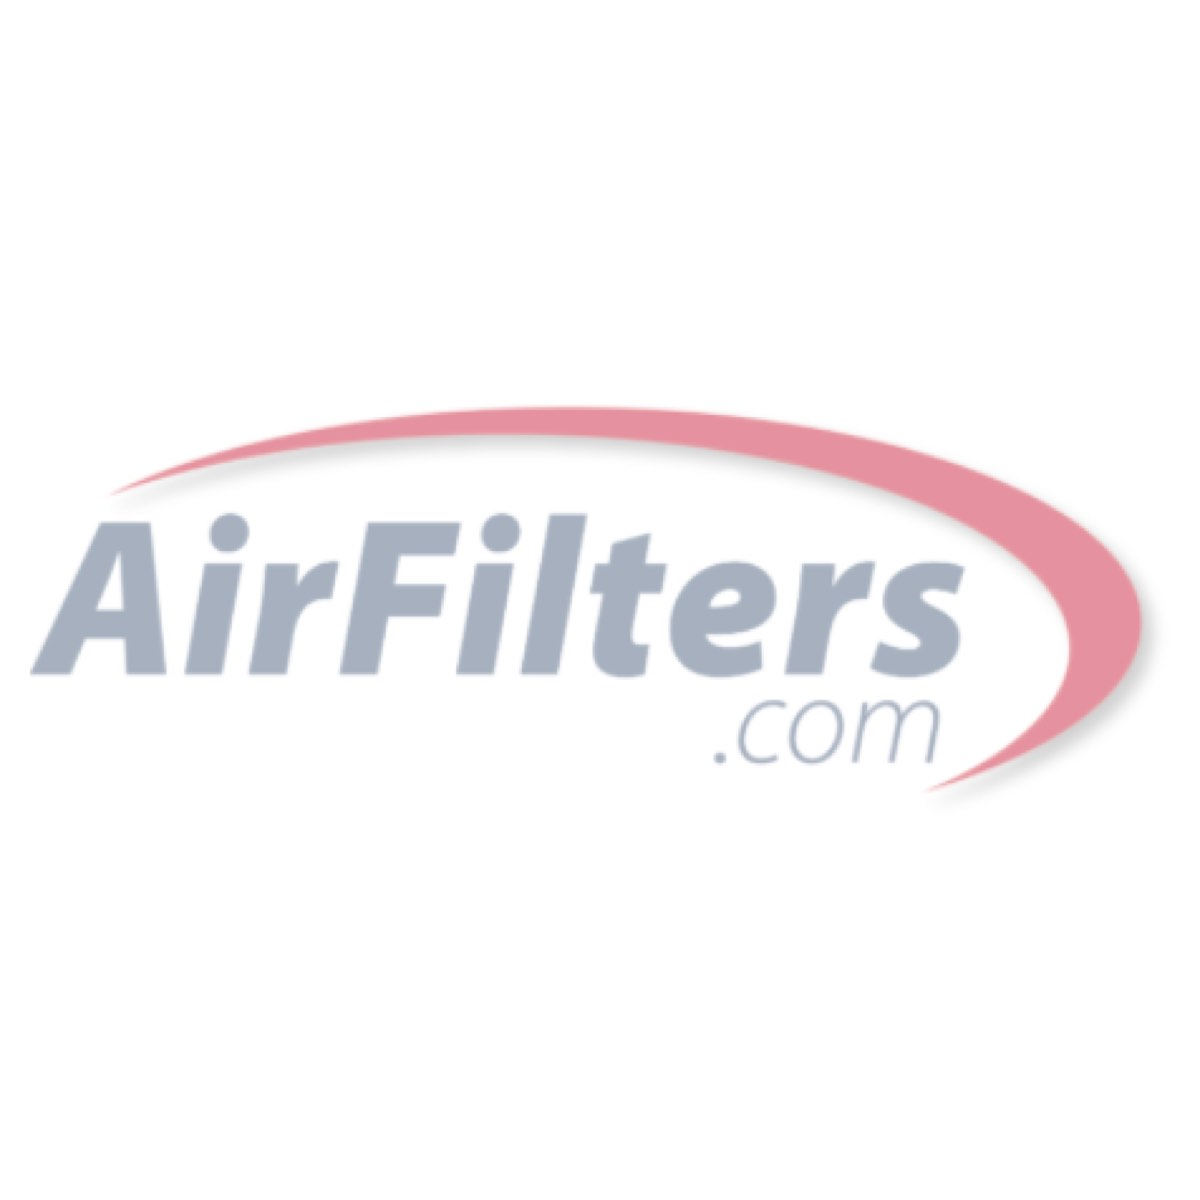 Electro-Air® 16x25x5 Furnace Filters by Accumulair®